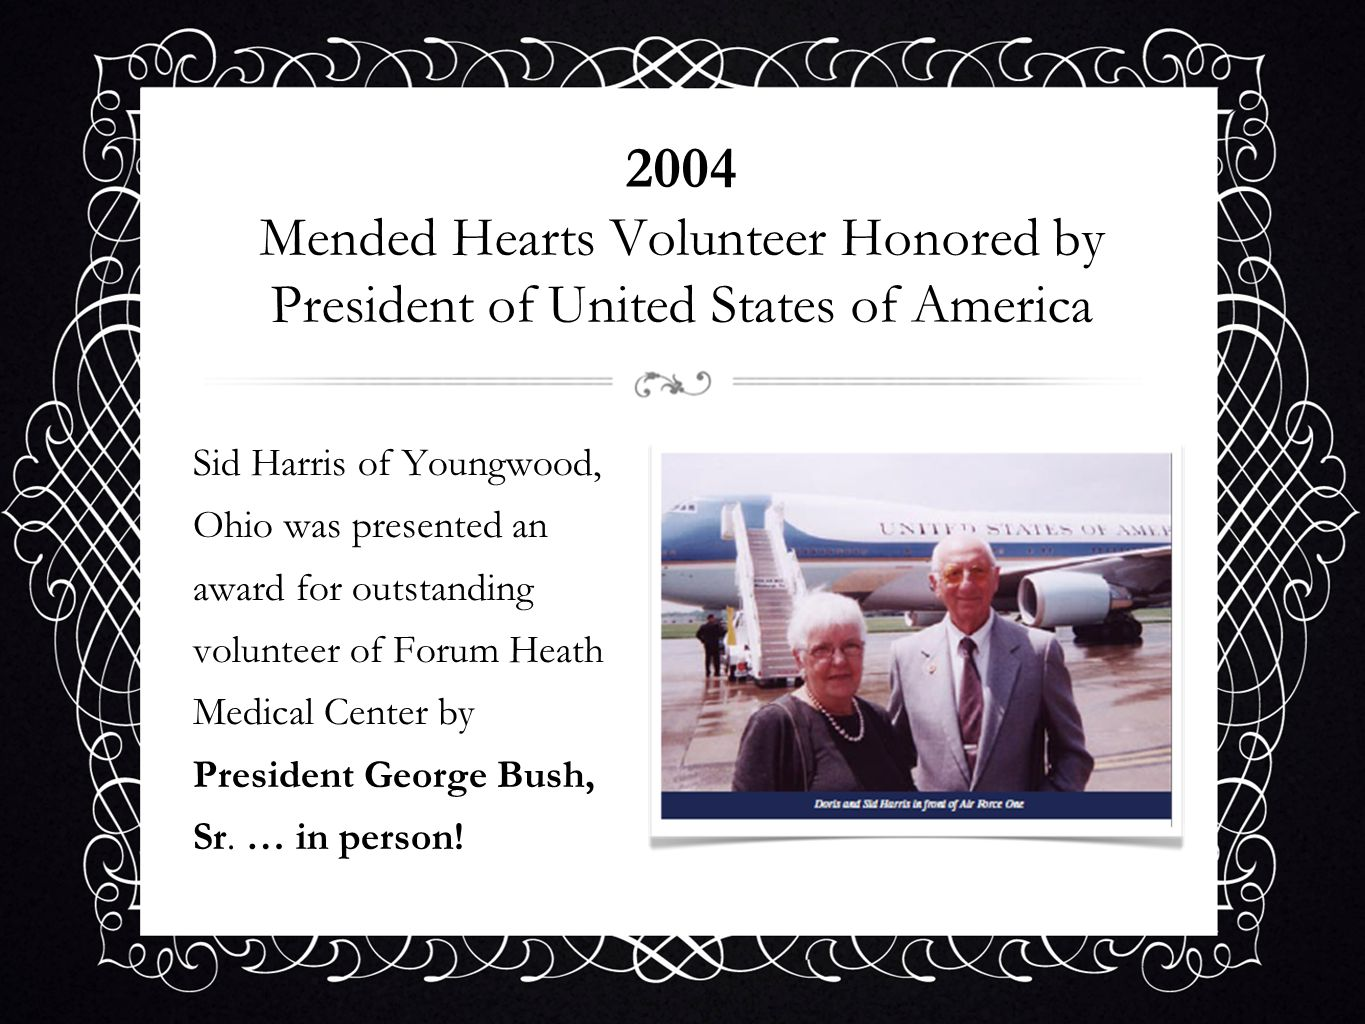 2004 Mended Hearts Volunteer Honored by President of United States of America